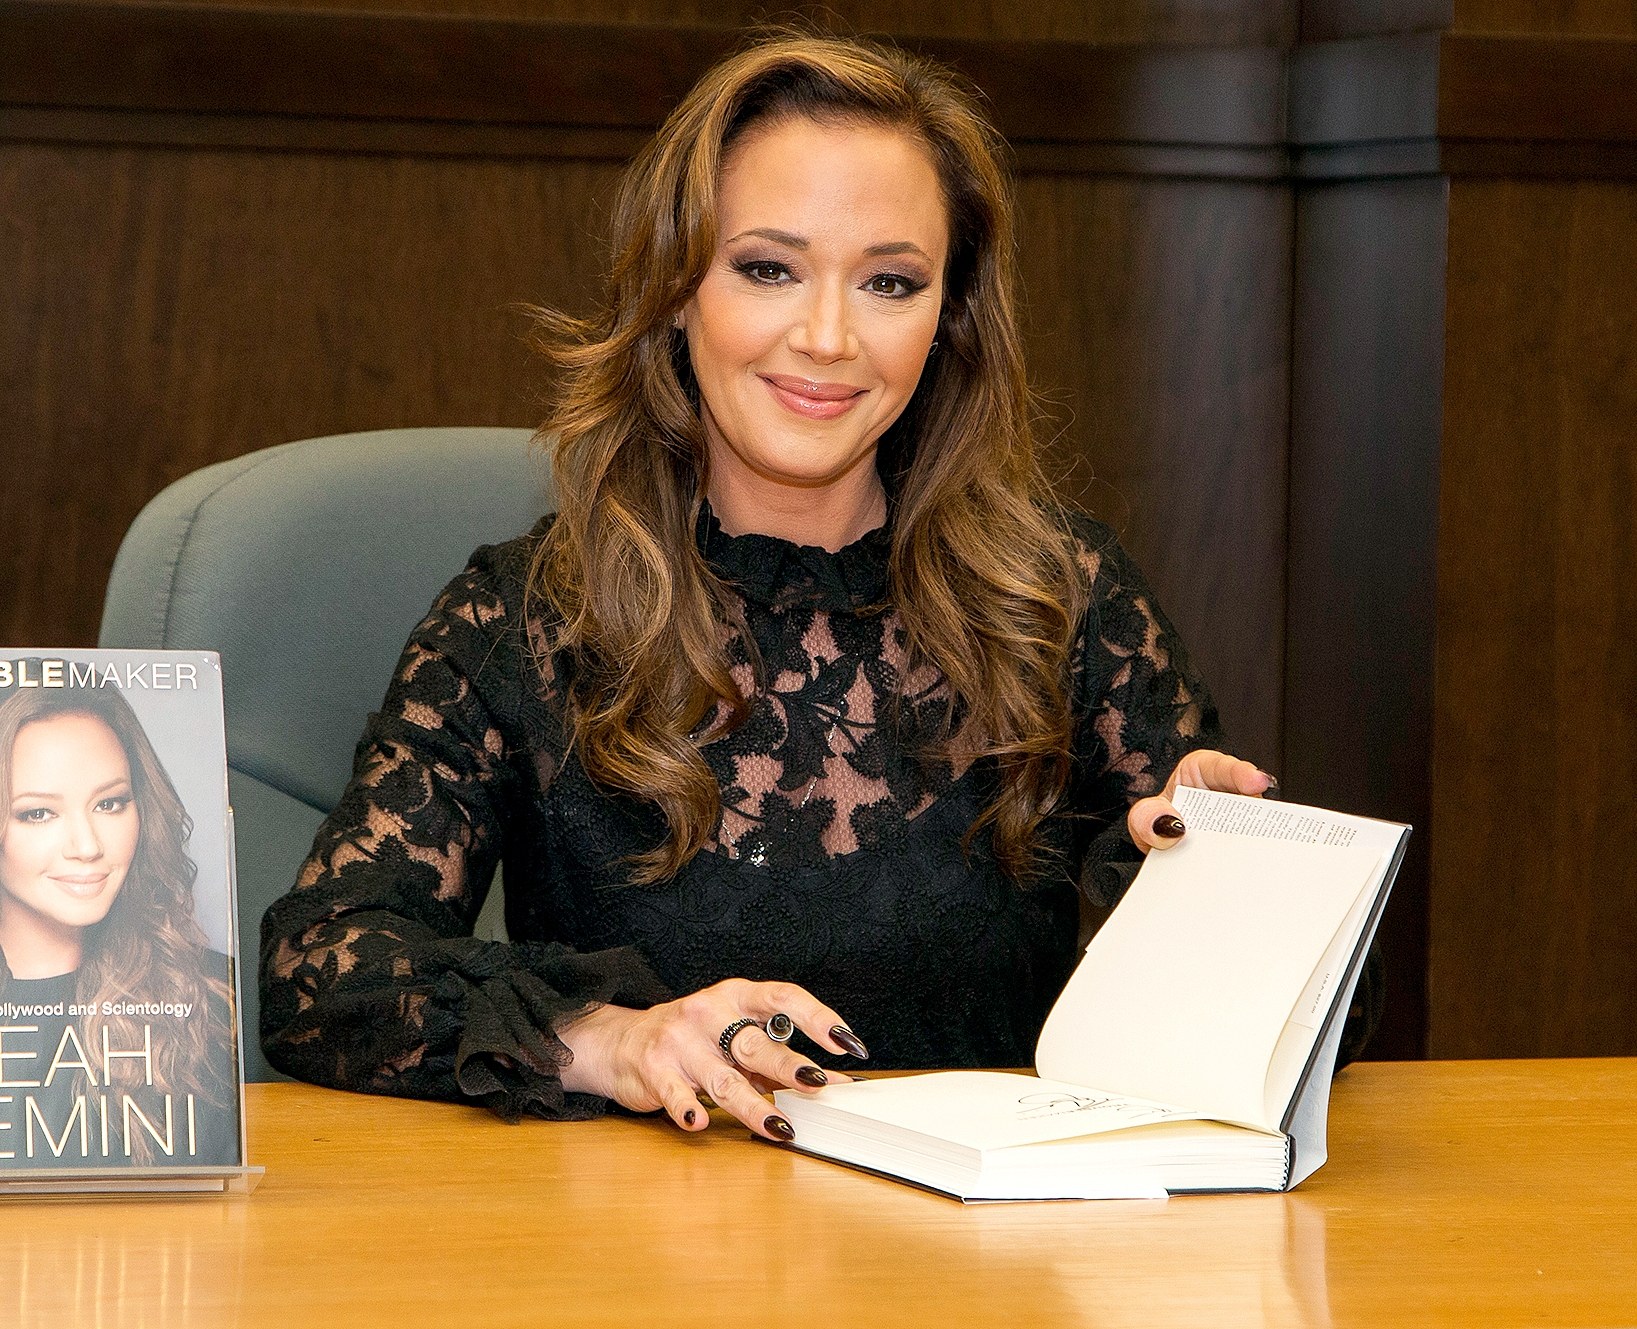 """Leah Remini signs copies of her new book """"Troublemaker: Surviving Hollywood and Scientology"""" at Barnes & Noble at The Grove on December 8, 2015 in Los Angeles, California."""